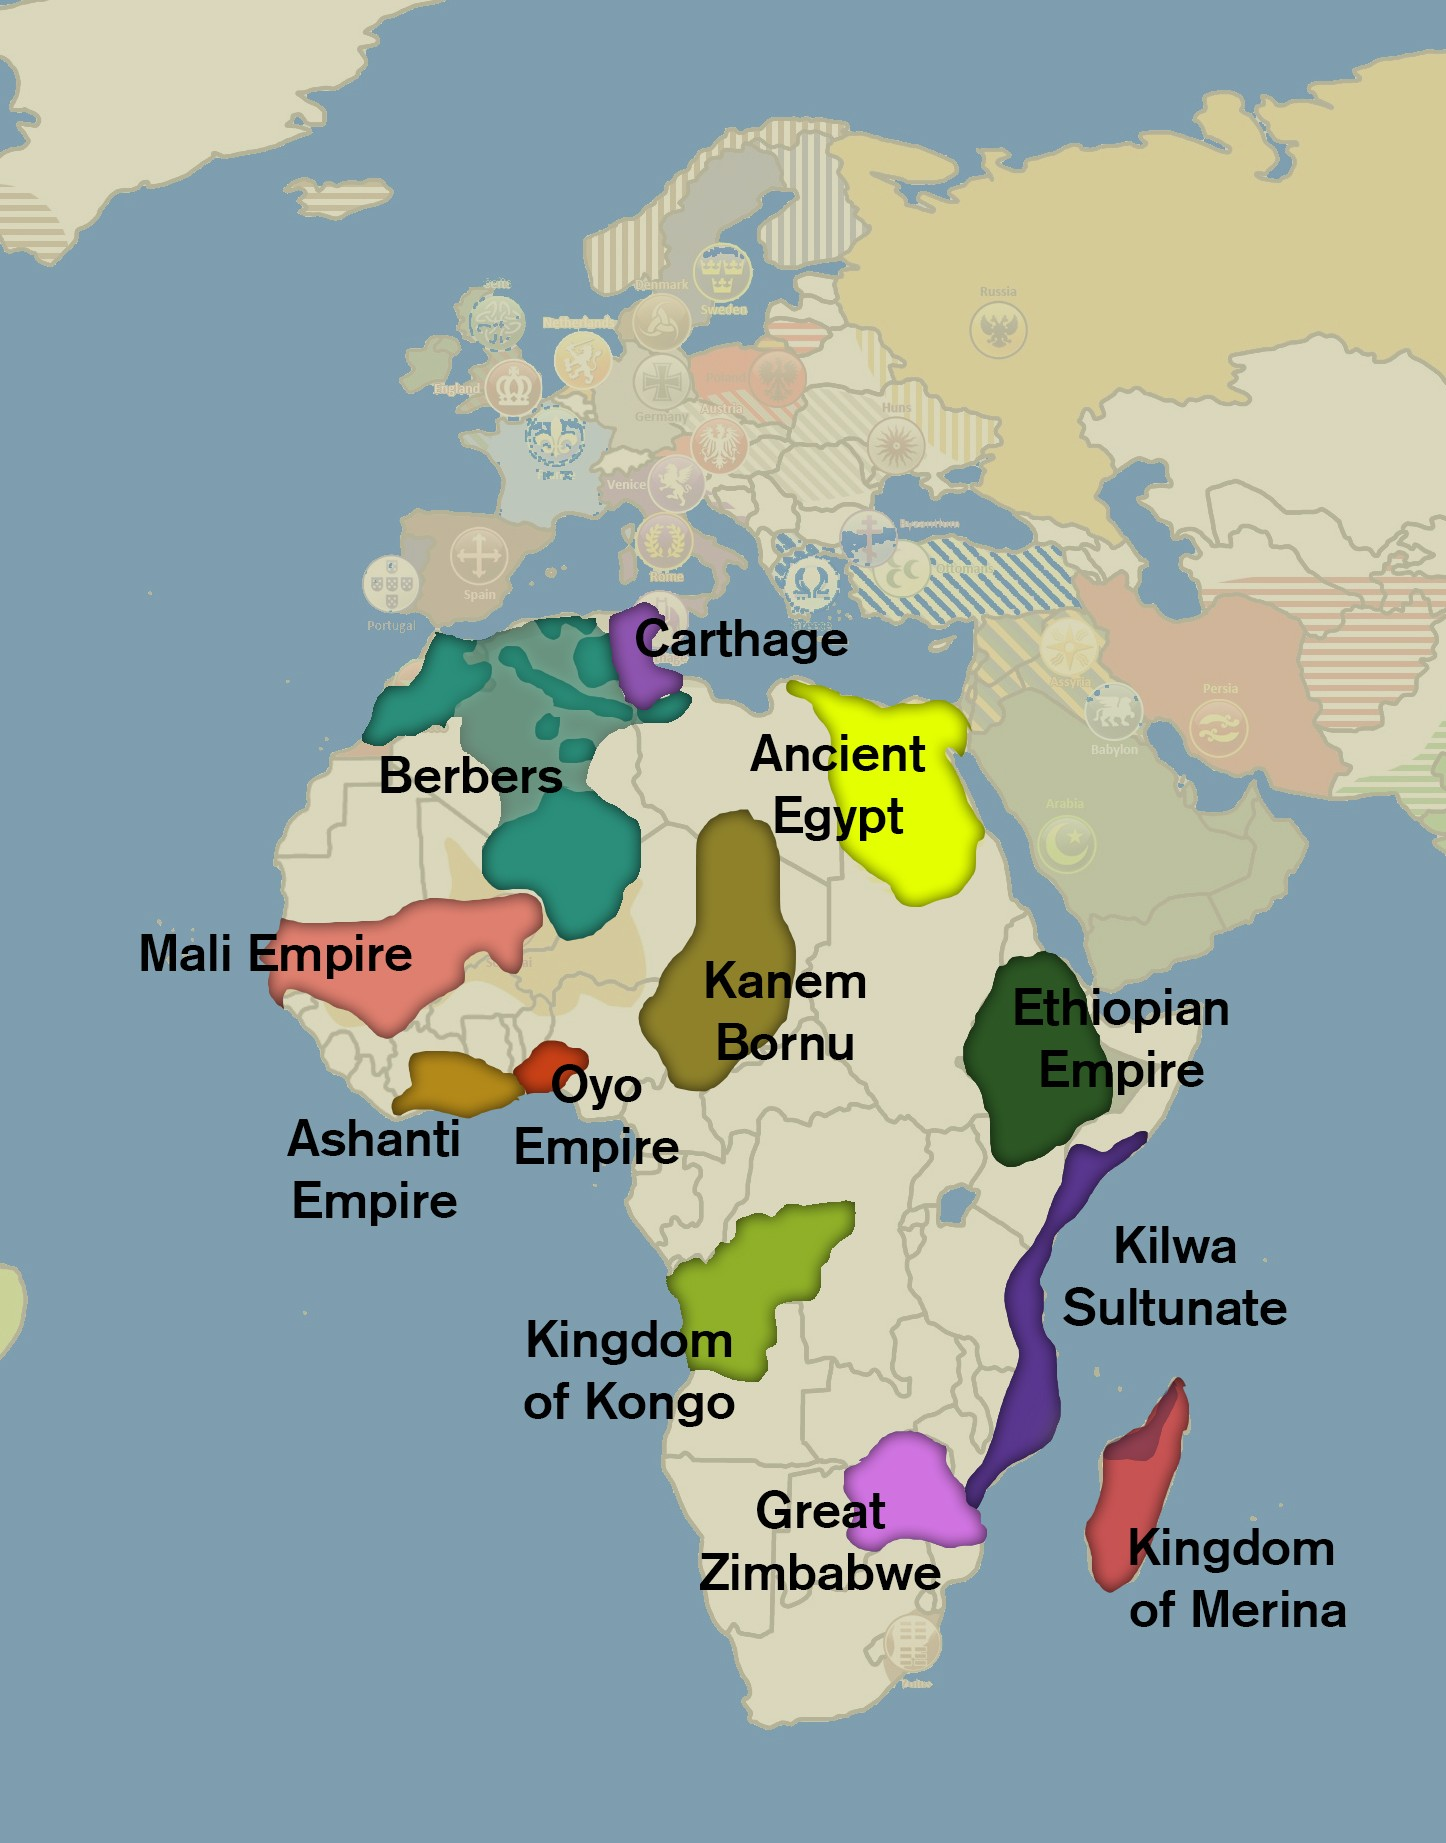 Ancient African Empires Map | Metal Gaia on geographical map of africa, current map of africa, blank map of africa, map of the founding of rome, map of africa with countries, climate map of africa, map of medieval africa, map of identity, map of contemporary africa, big map of africa, map of north america, map of cush, map of italian africa, map of norway africa, map of mesopotamia, map of china, map of middle east, map of east africa, map of earth africa, map of historical africa,